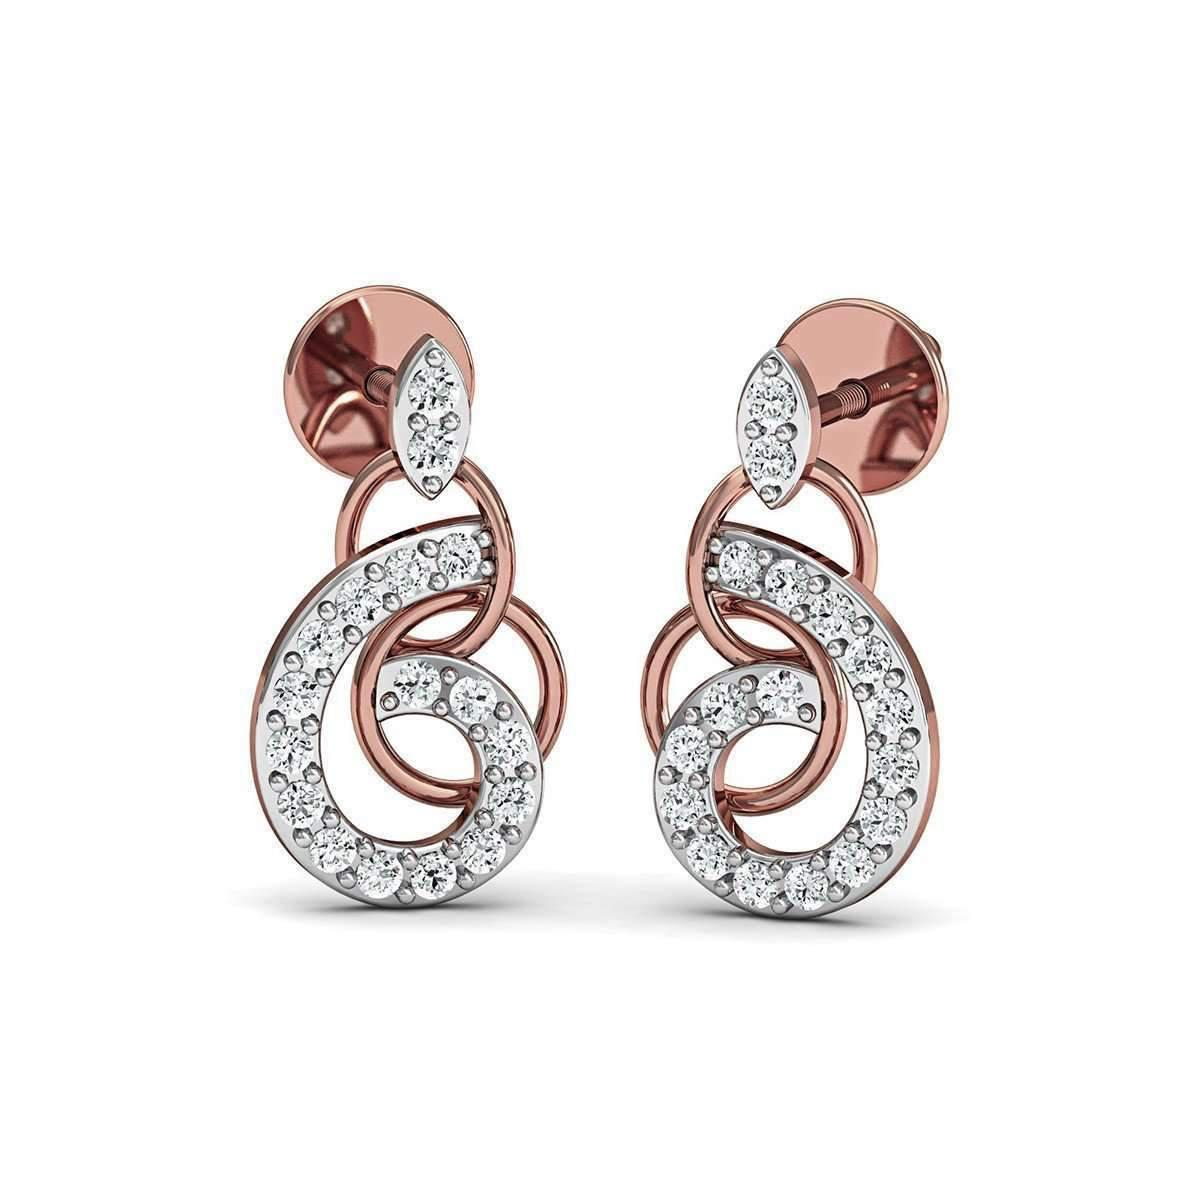 Diamoire Jewels 14kt Rose Gold and Diamond Pave Earrings 9obqU8